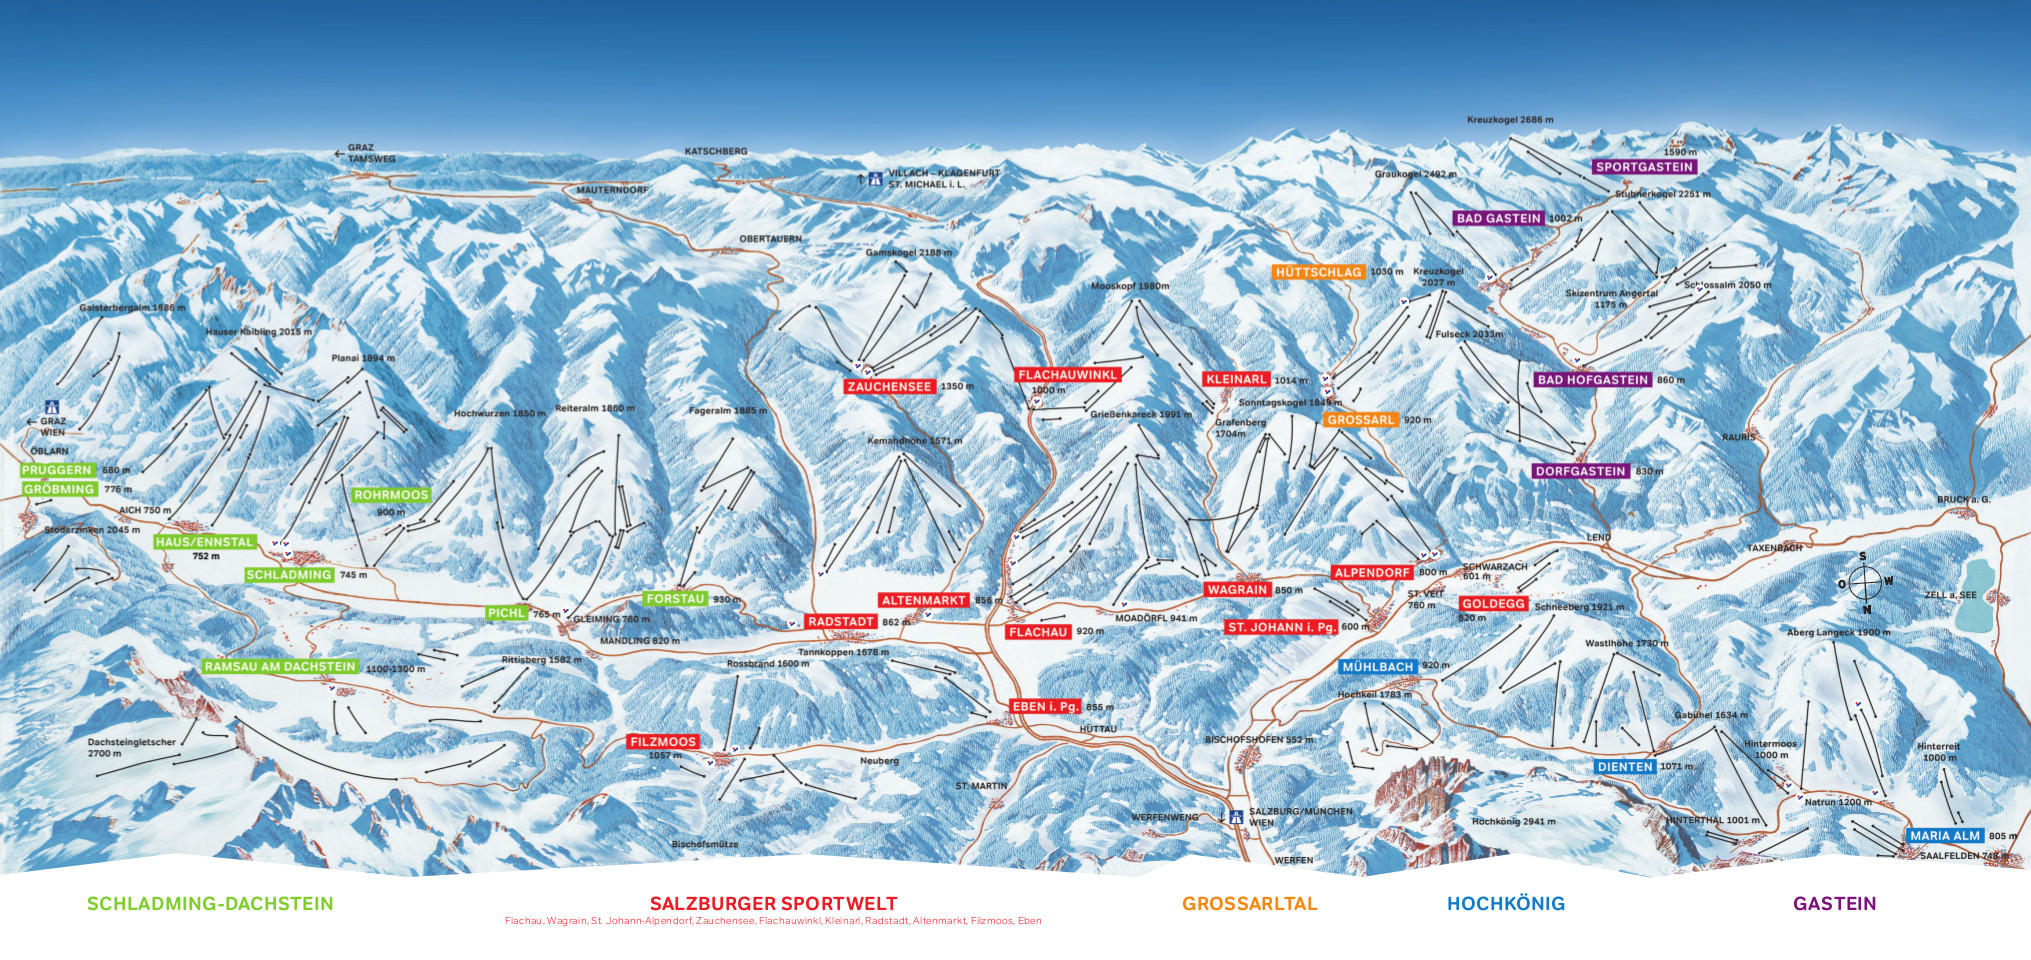 Ski Amade Piste Map Free Downloadable Piste Maps